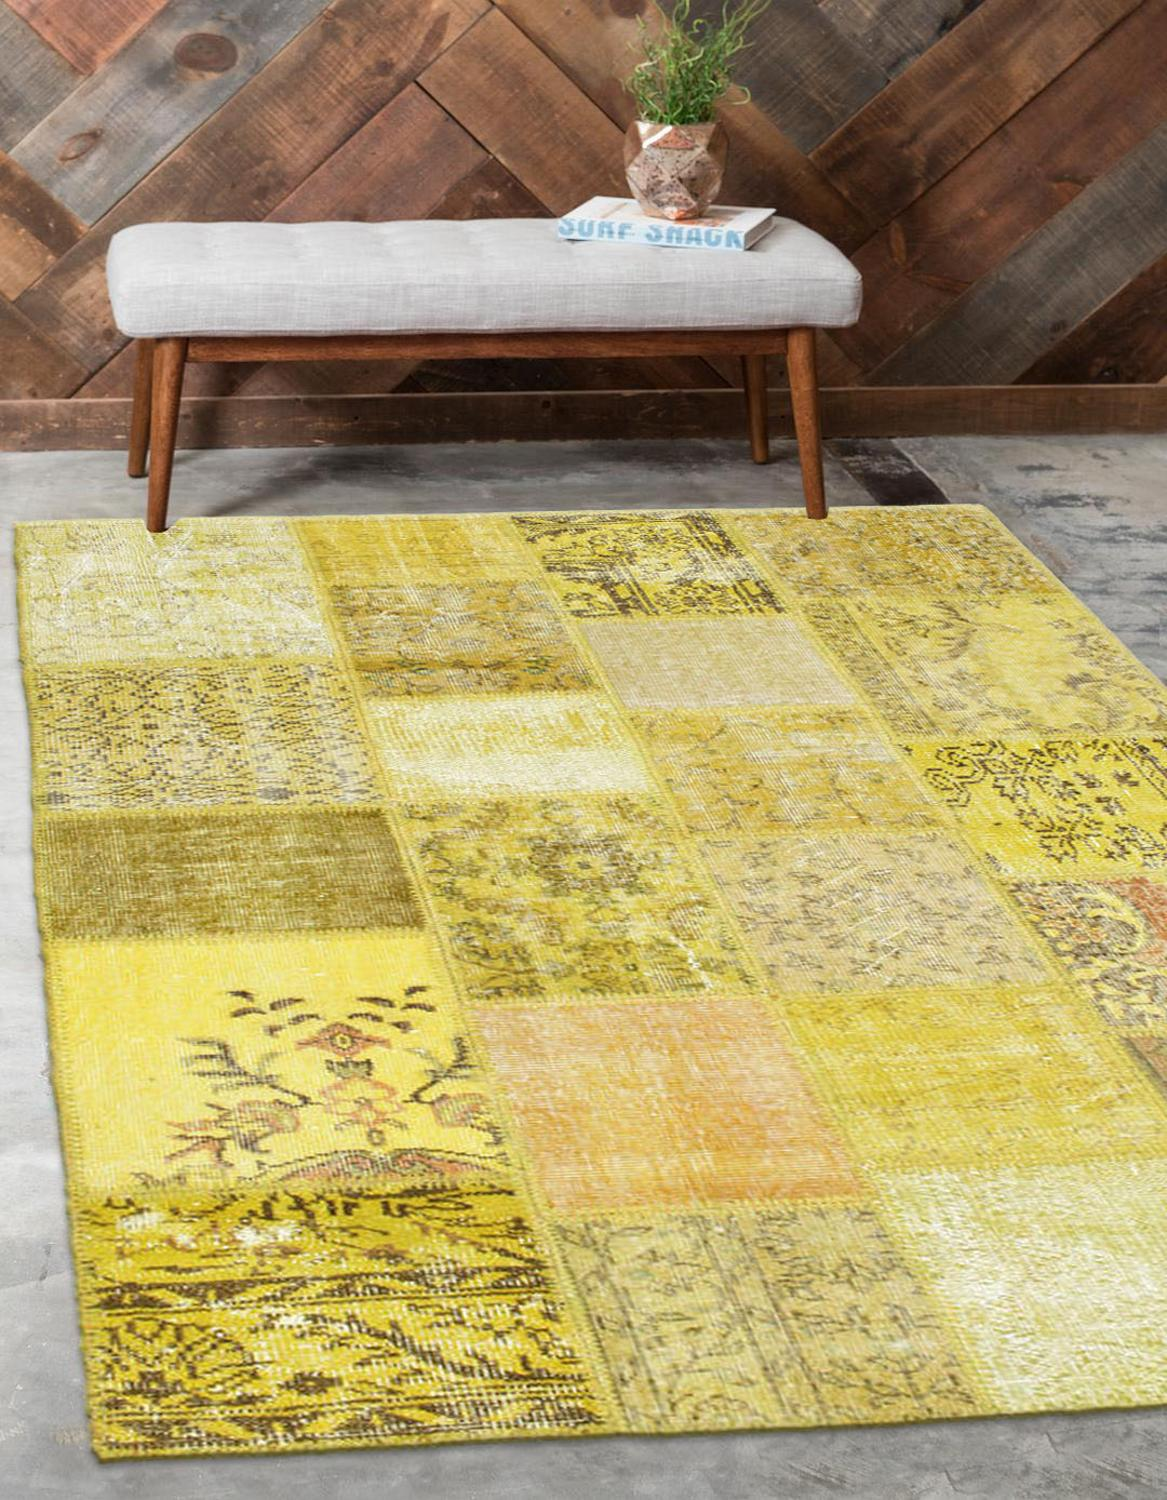 Else Yellow Anatolian Patchwork Rug Turkish Handmade Organic Area Rug Decorative Home Decor Wool Patchwork Rug Carpet